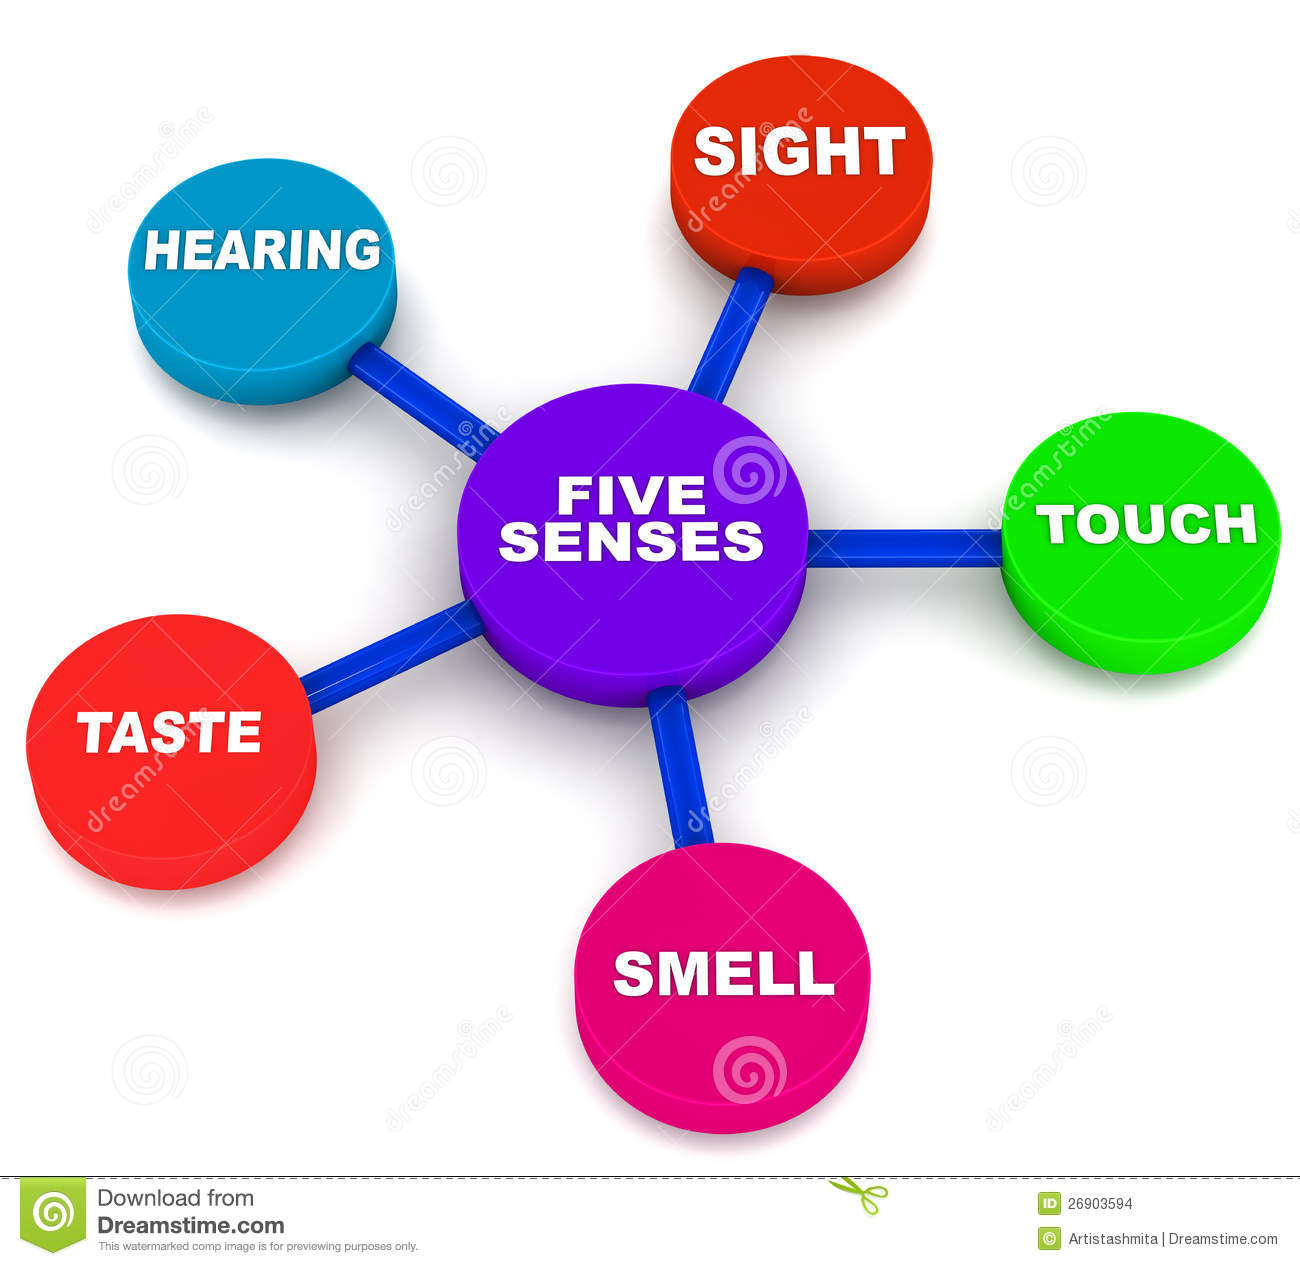 Five senses of human beings, sight touch hearing taste and smell.